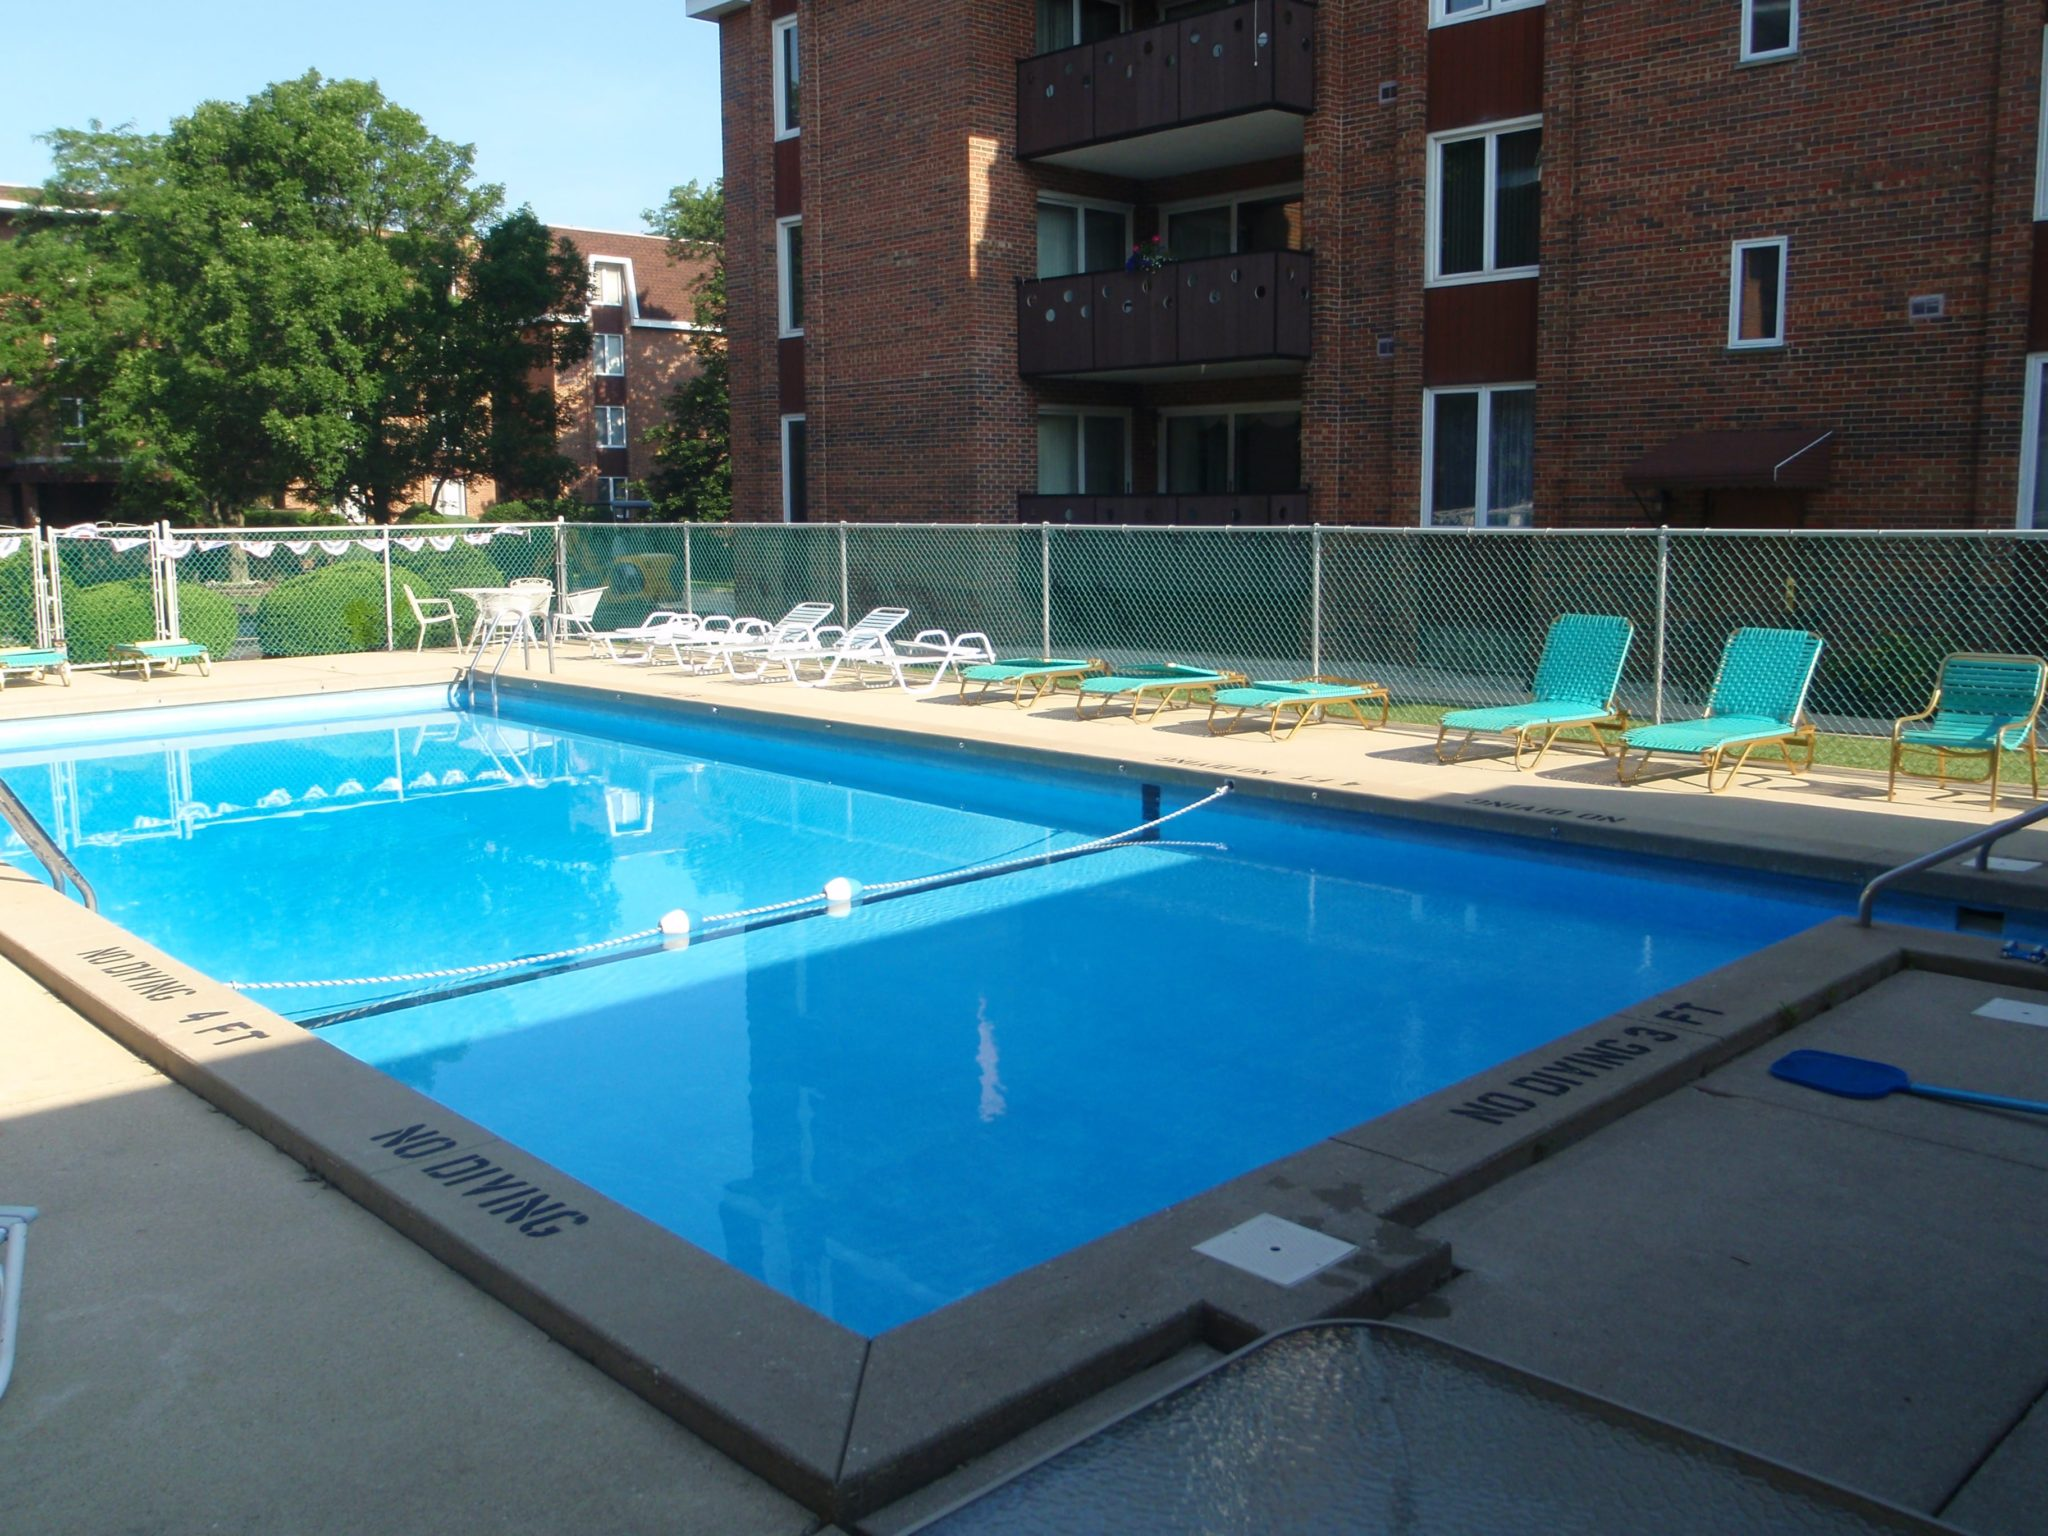 Fiberglass Pools Vs Gunite Pools Danna Pools Inc